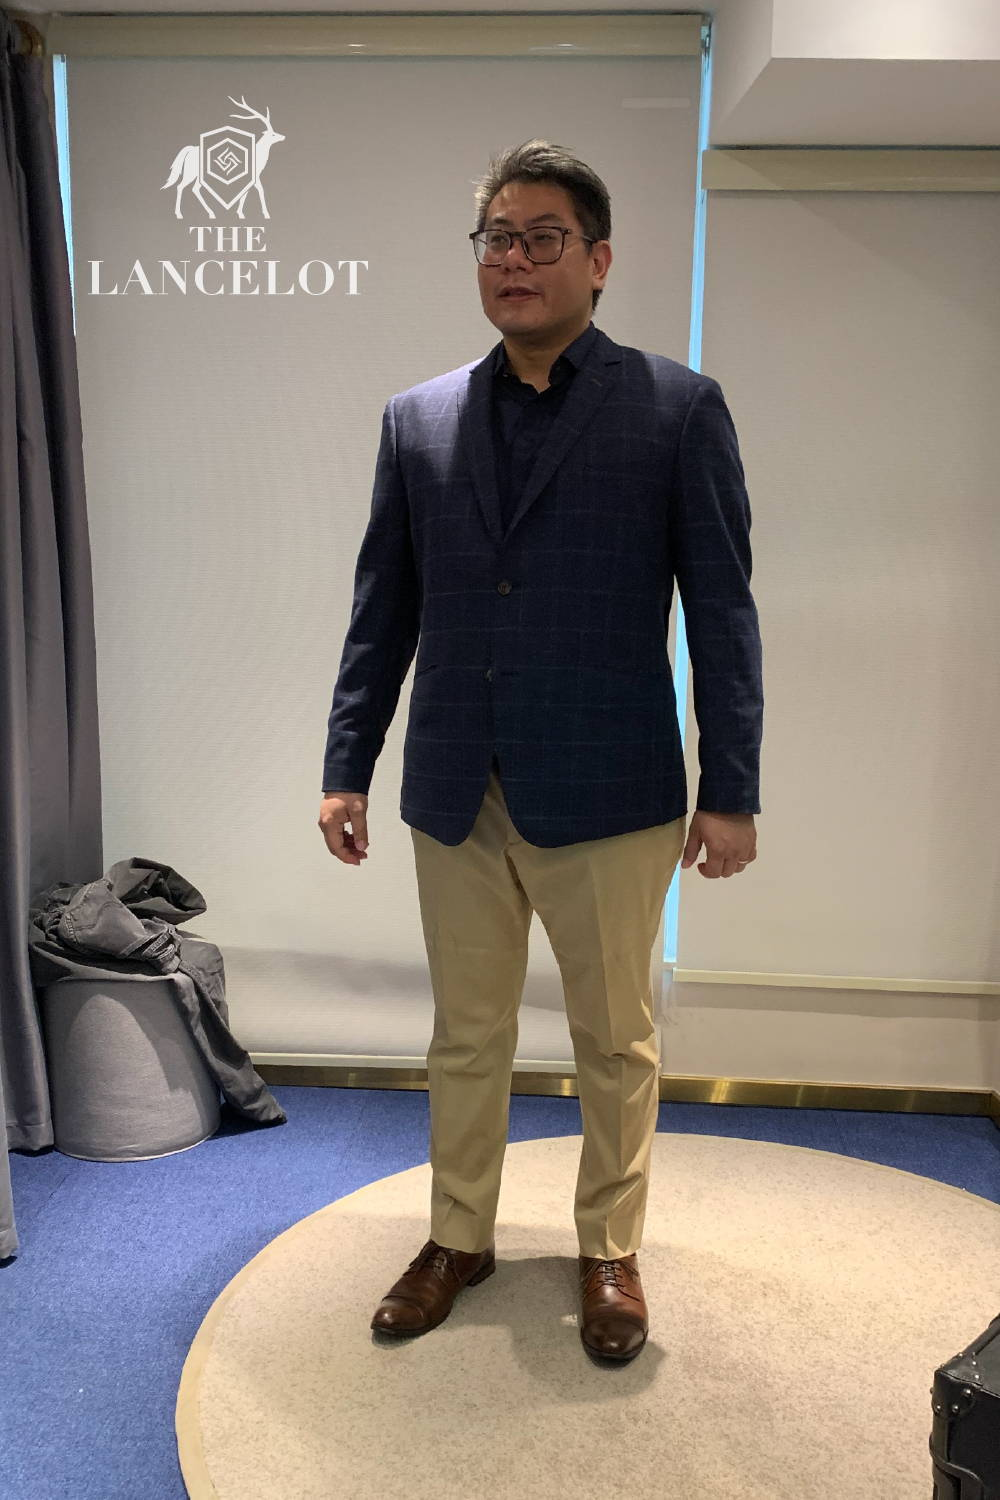 the-lancelot-hong-kong-bespoke-tailor-gallery-portfolio-6